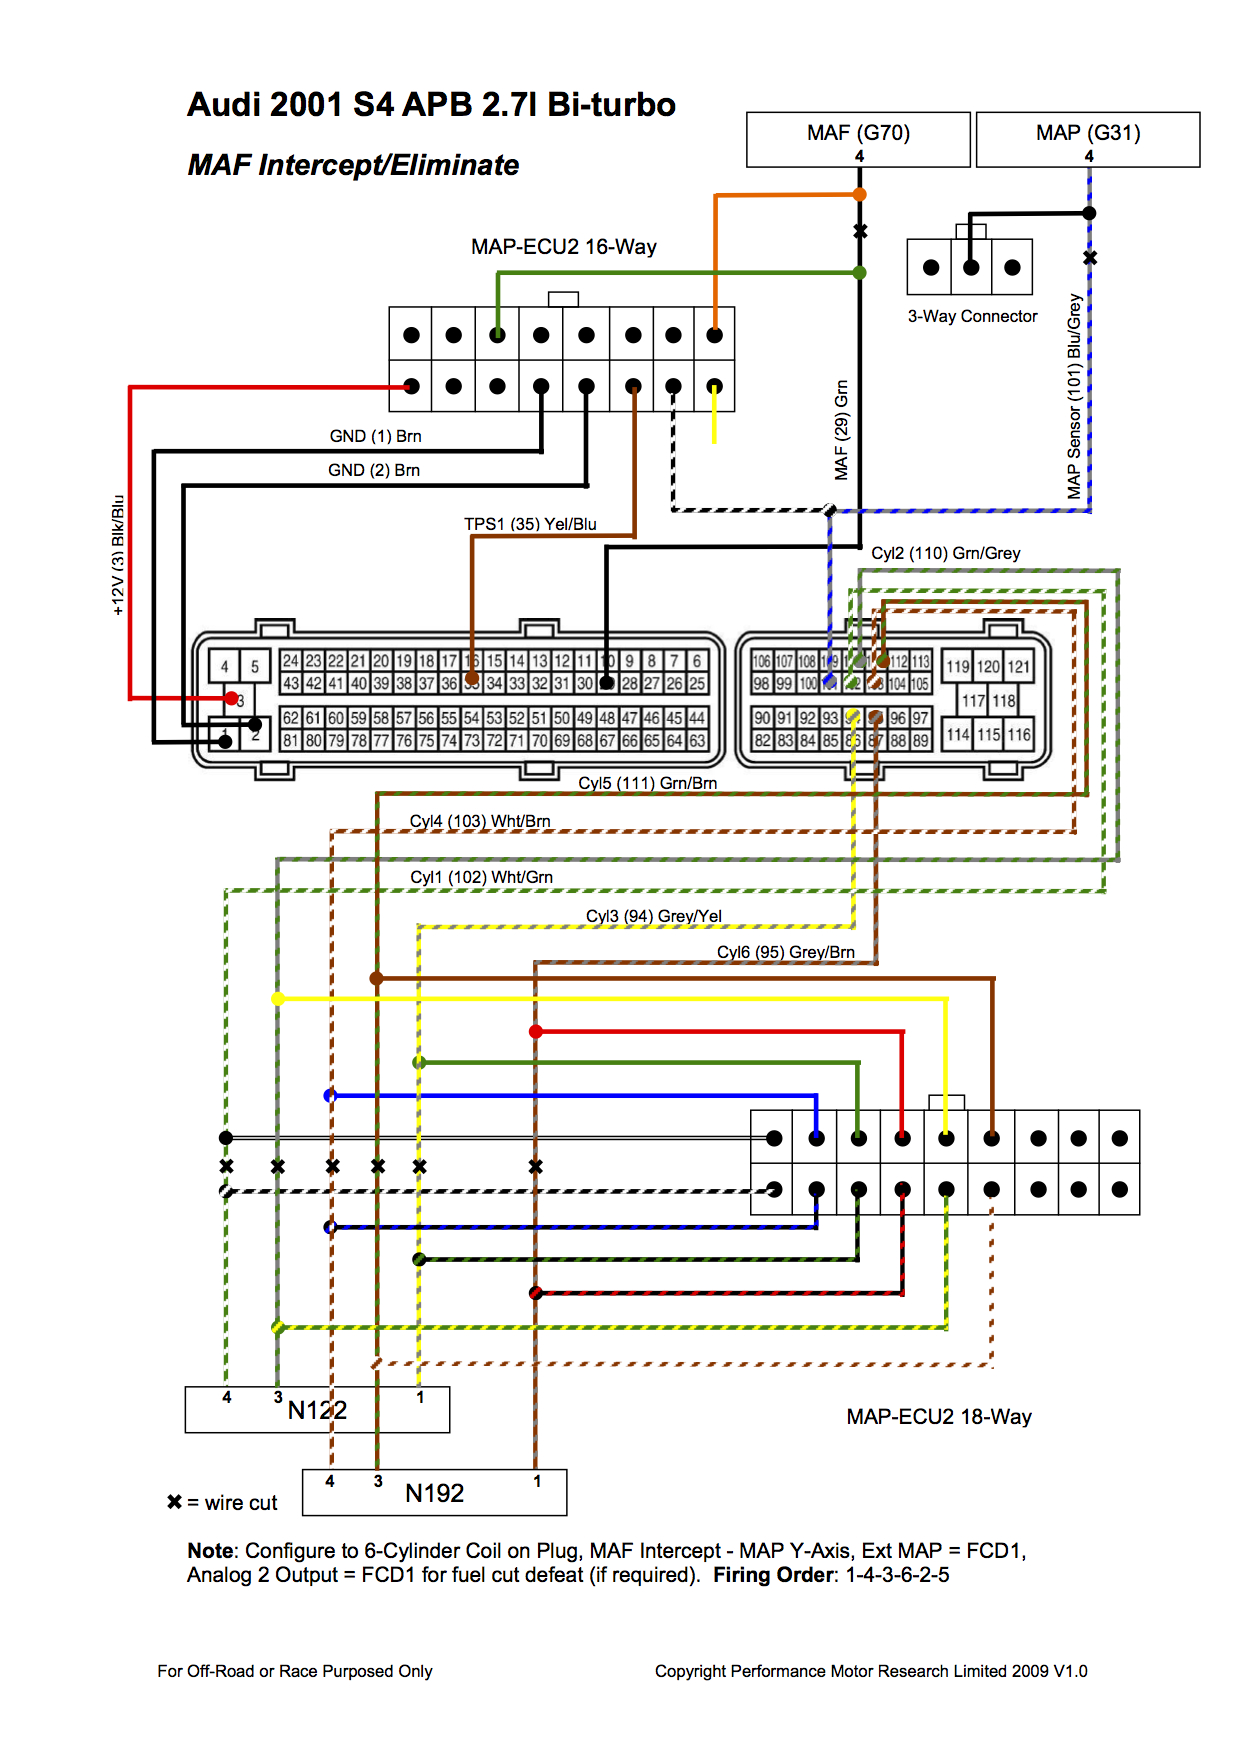 Audi S4 20011 lexus v8 vvti wiring diagram lexus wiring diagrams instruction  at panicattacktreatment.co